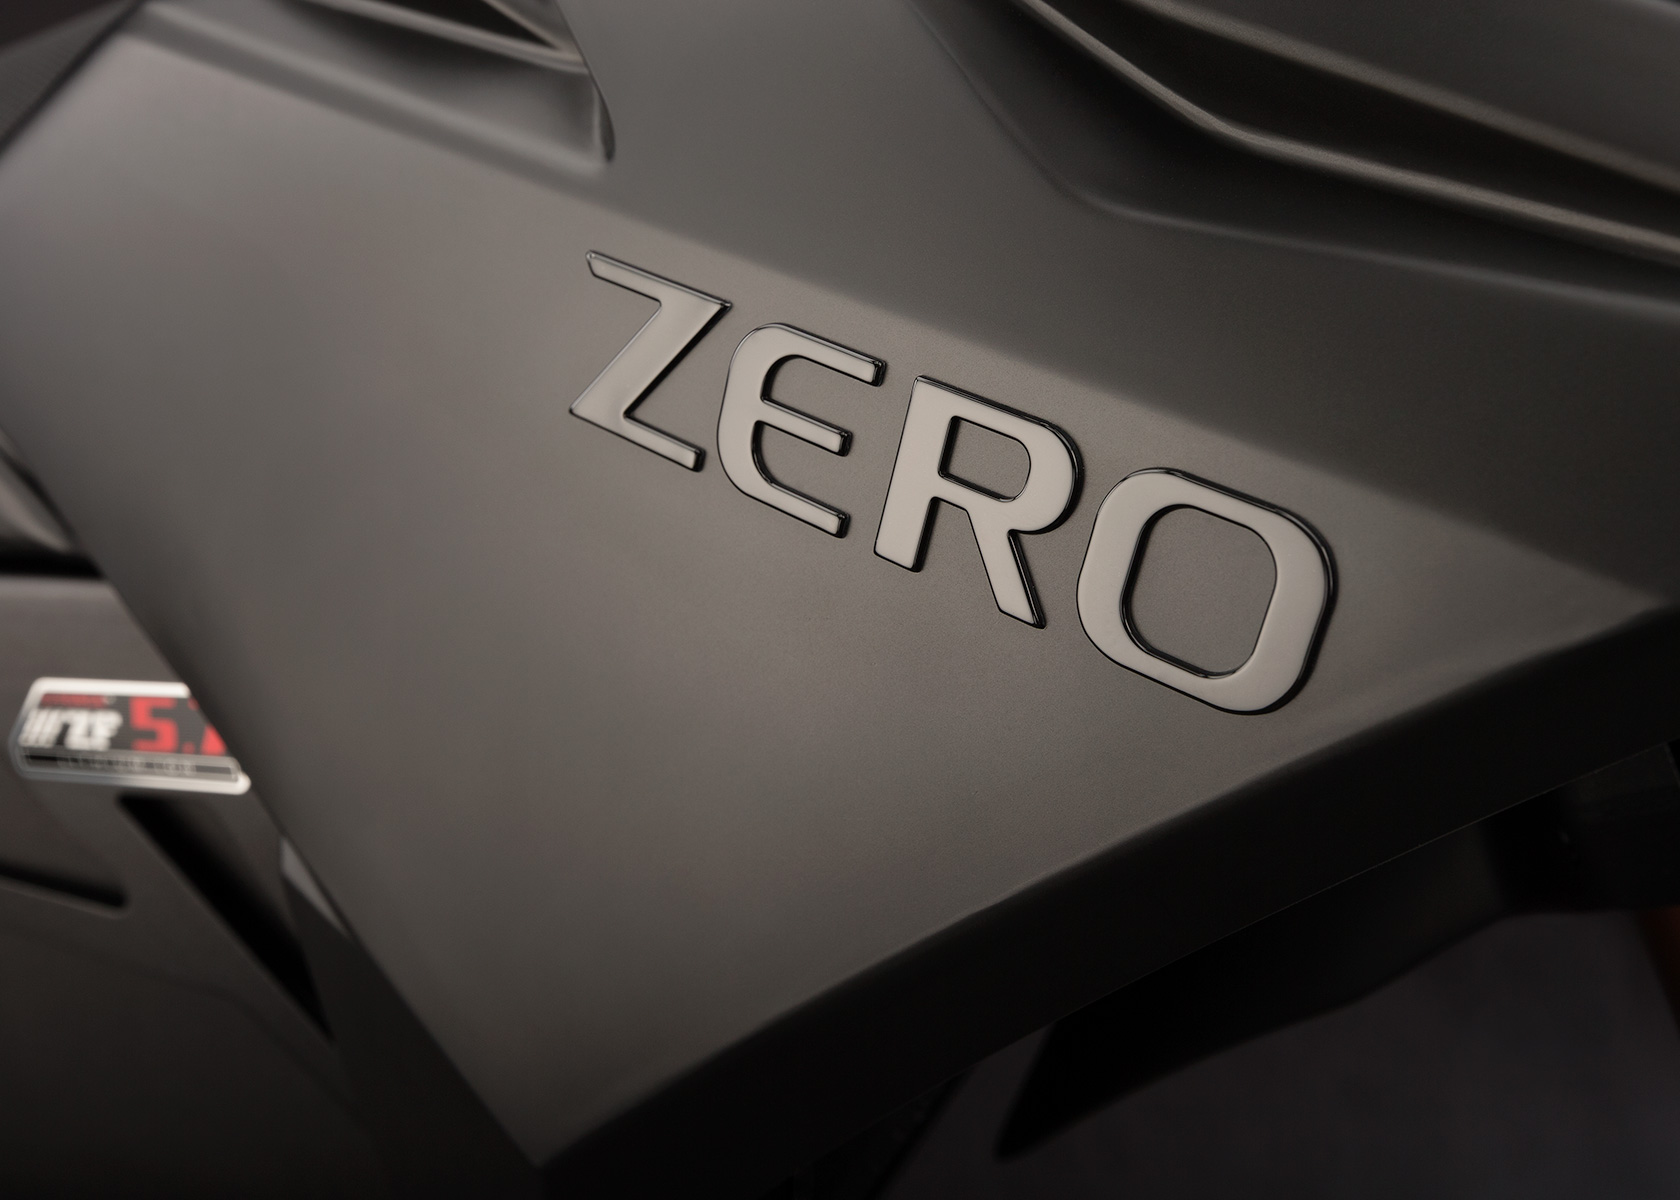 2013 Zero FX Electric Motorcycle: Tank